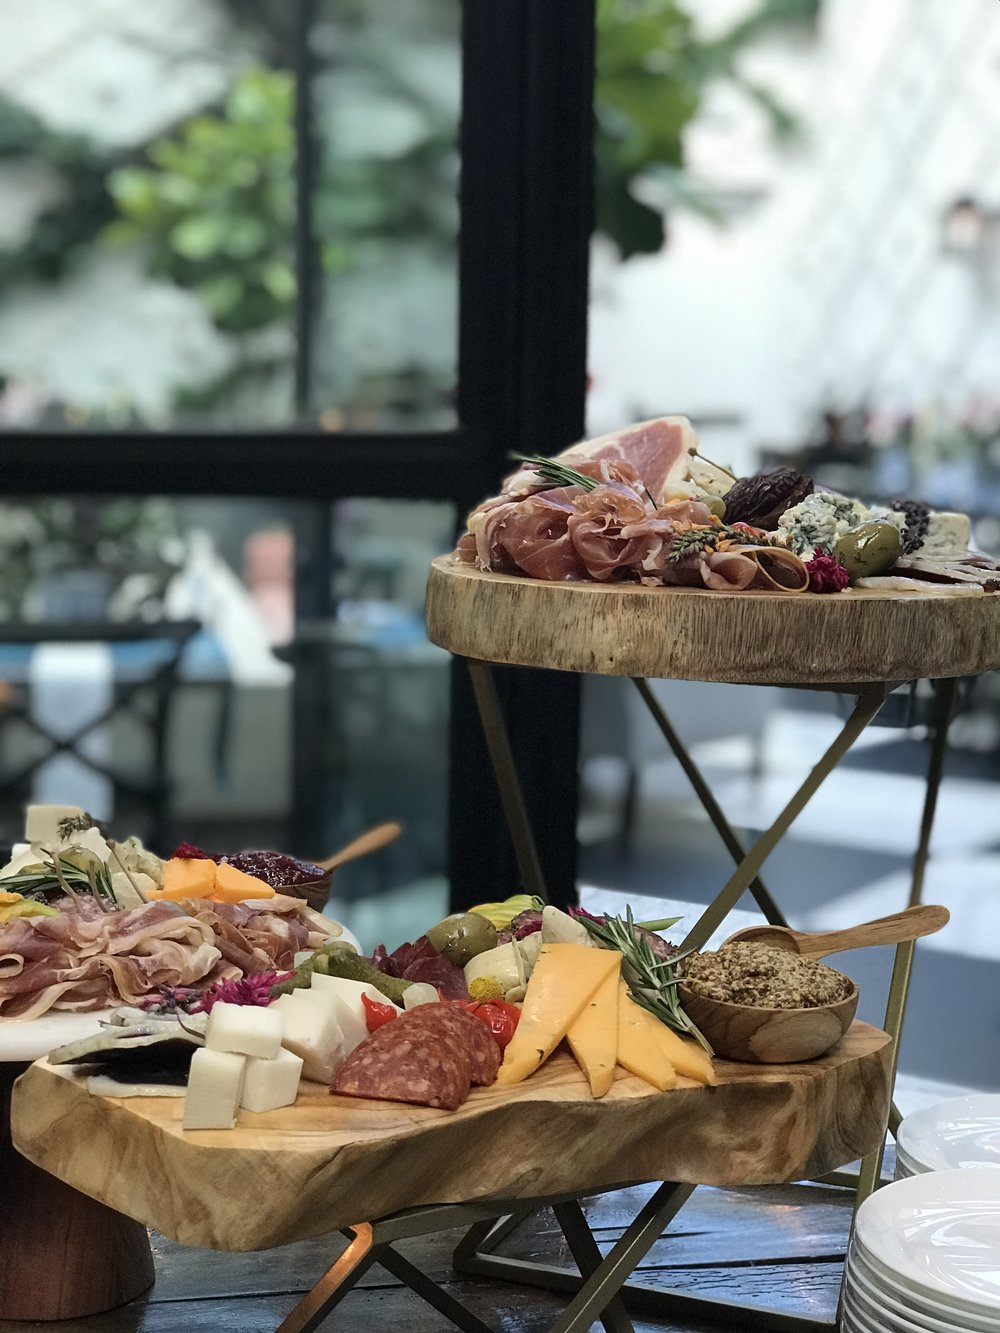 Presenting the most amazing Charcuterie display we've ever seen!